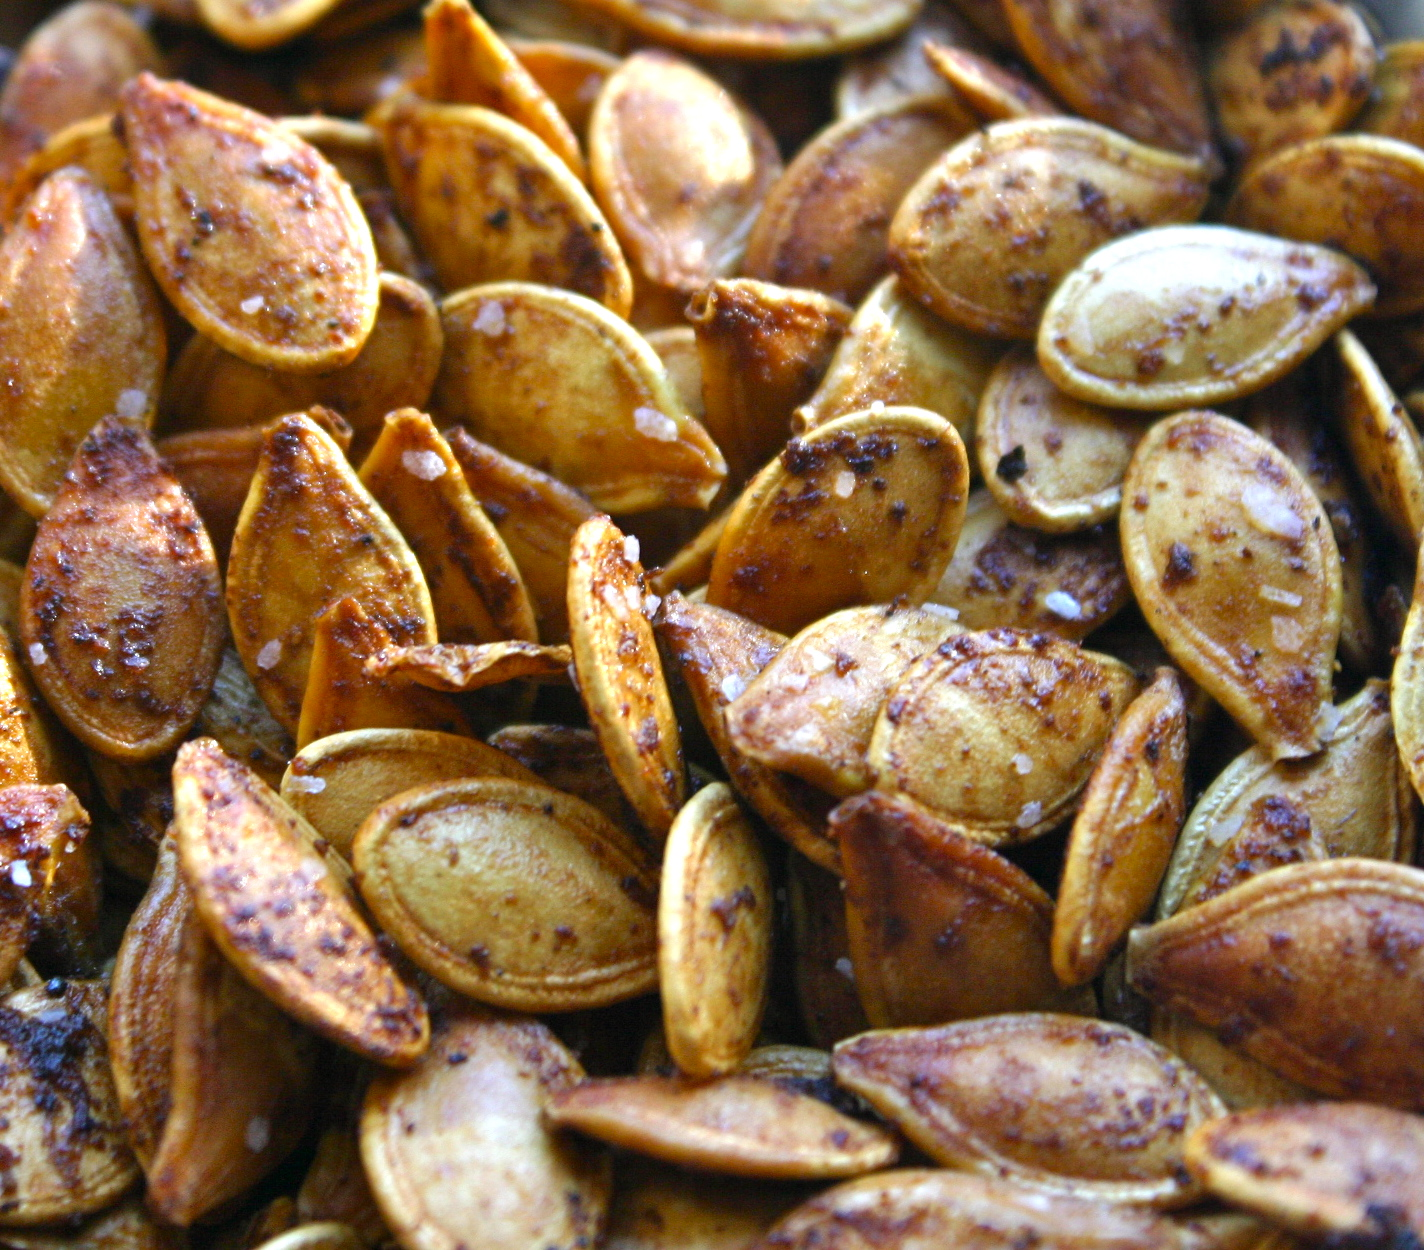 My Retro Kitchen: Roasted Pumpkin Seeds- Two Ways, Savory ...